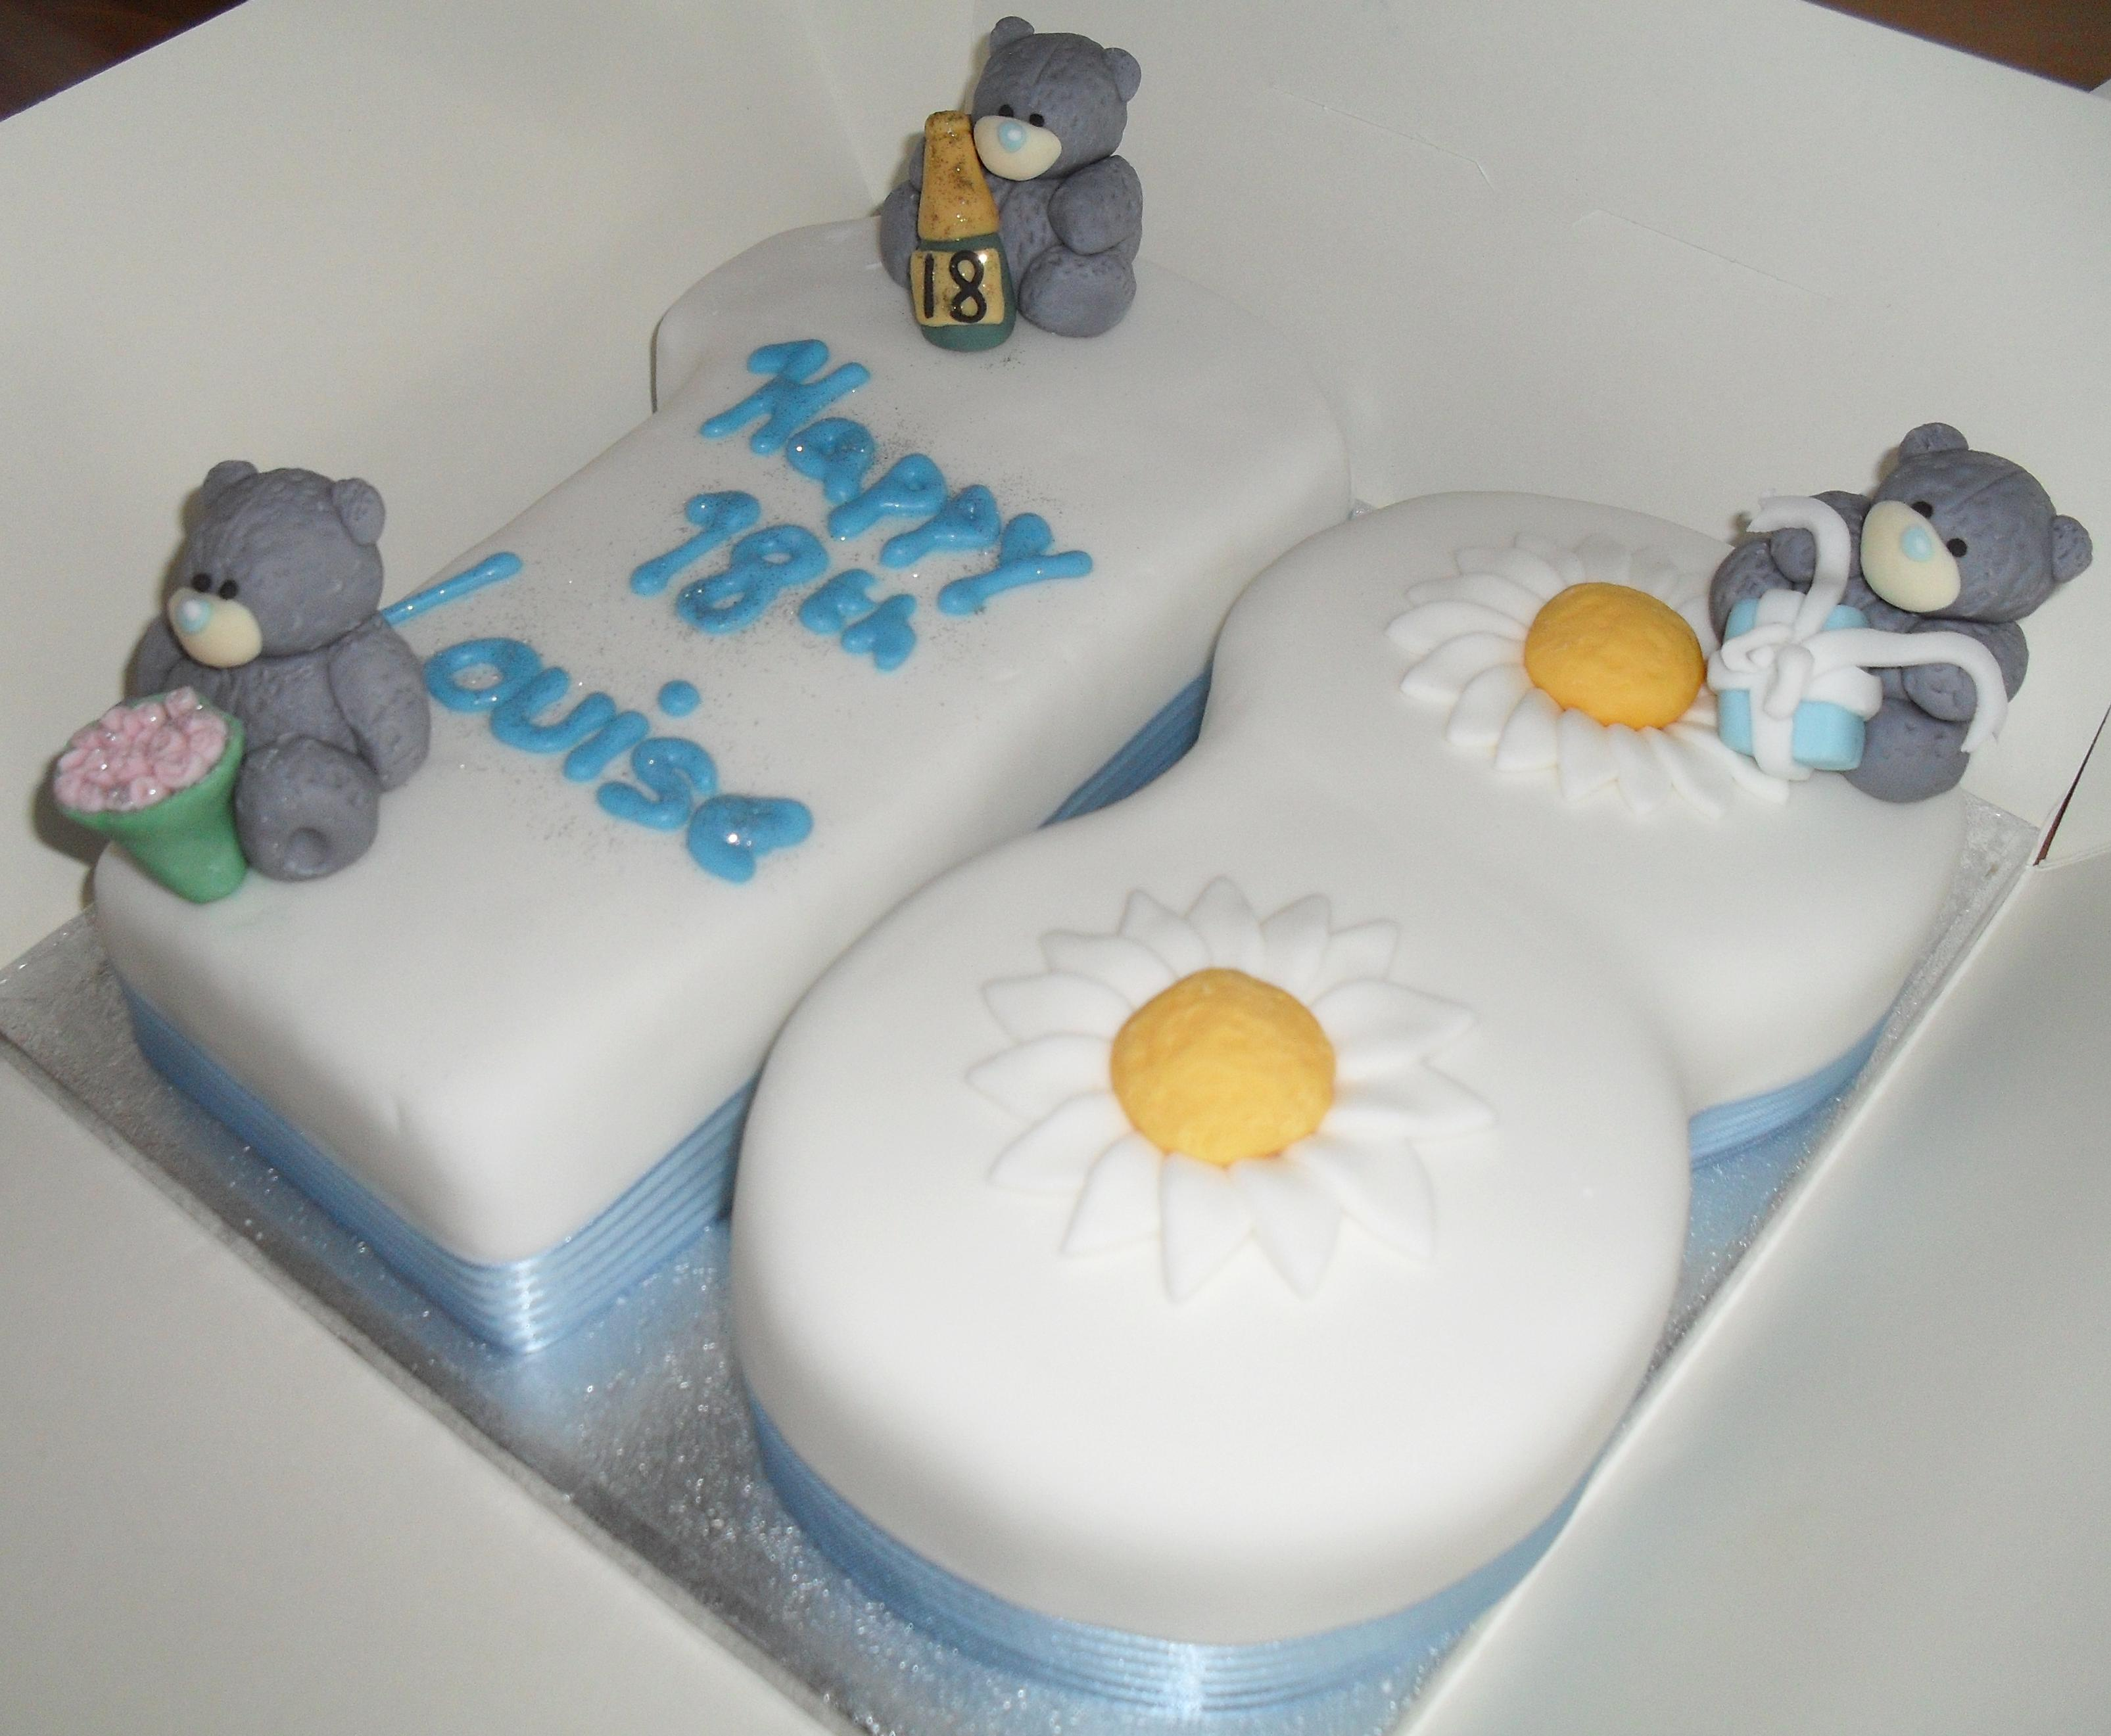 Cakes By Lucie - Birthday & Celebration Cakes